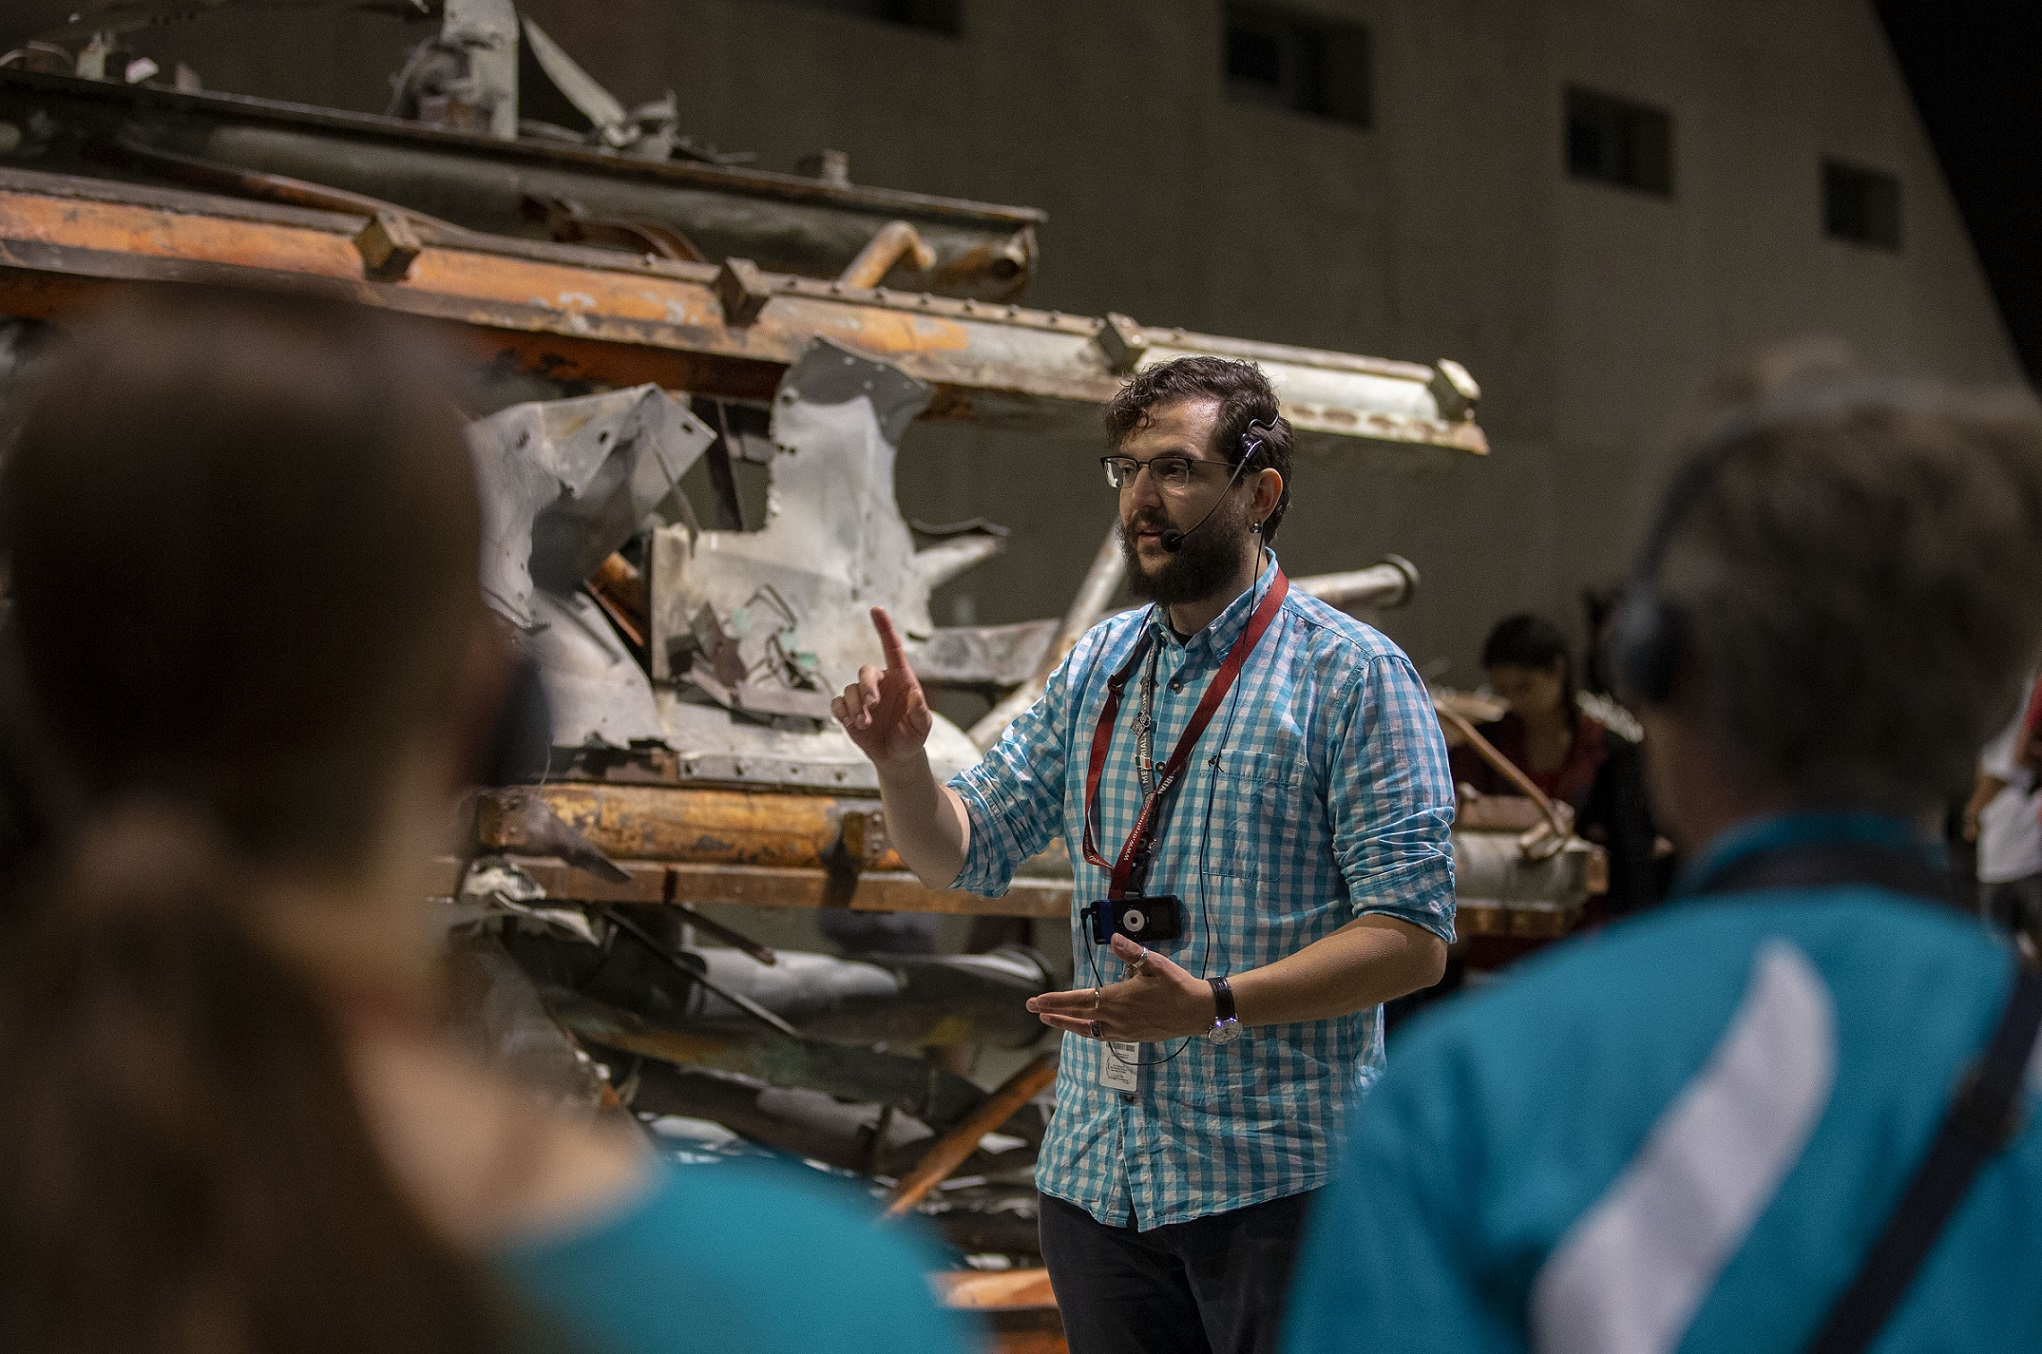 A male tour guide stands in front of the mangled antenna of Tower One as he talks to visitors on a guided tour in Memorial Hall.